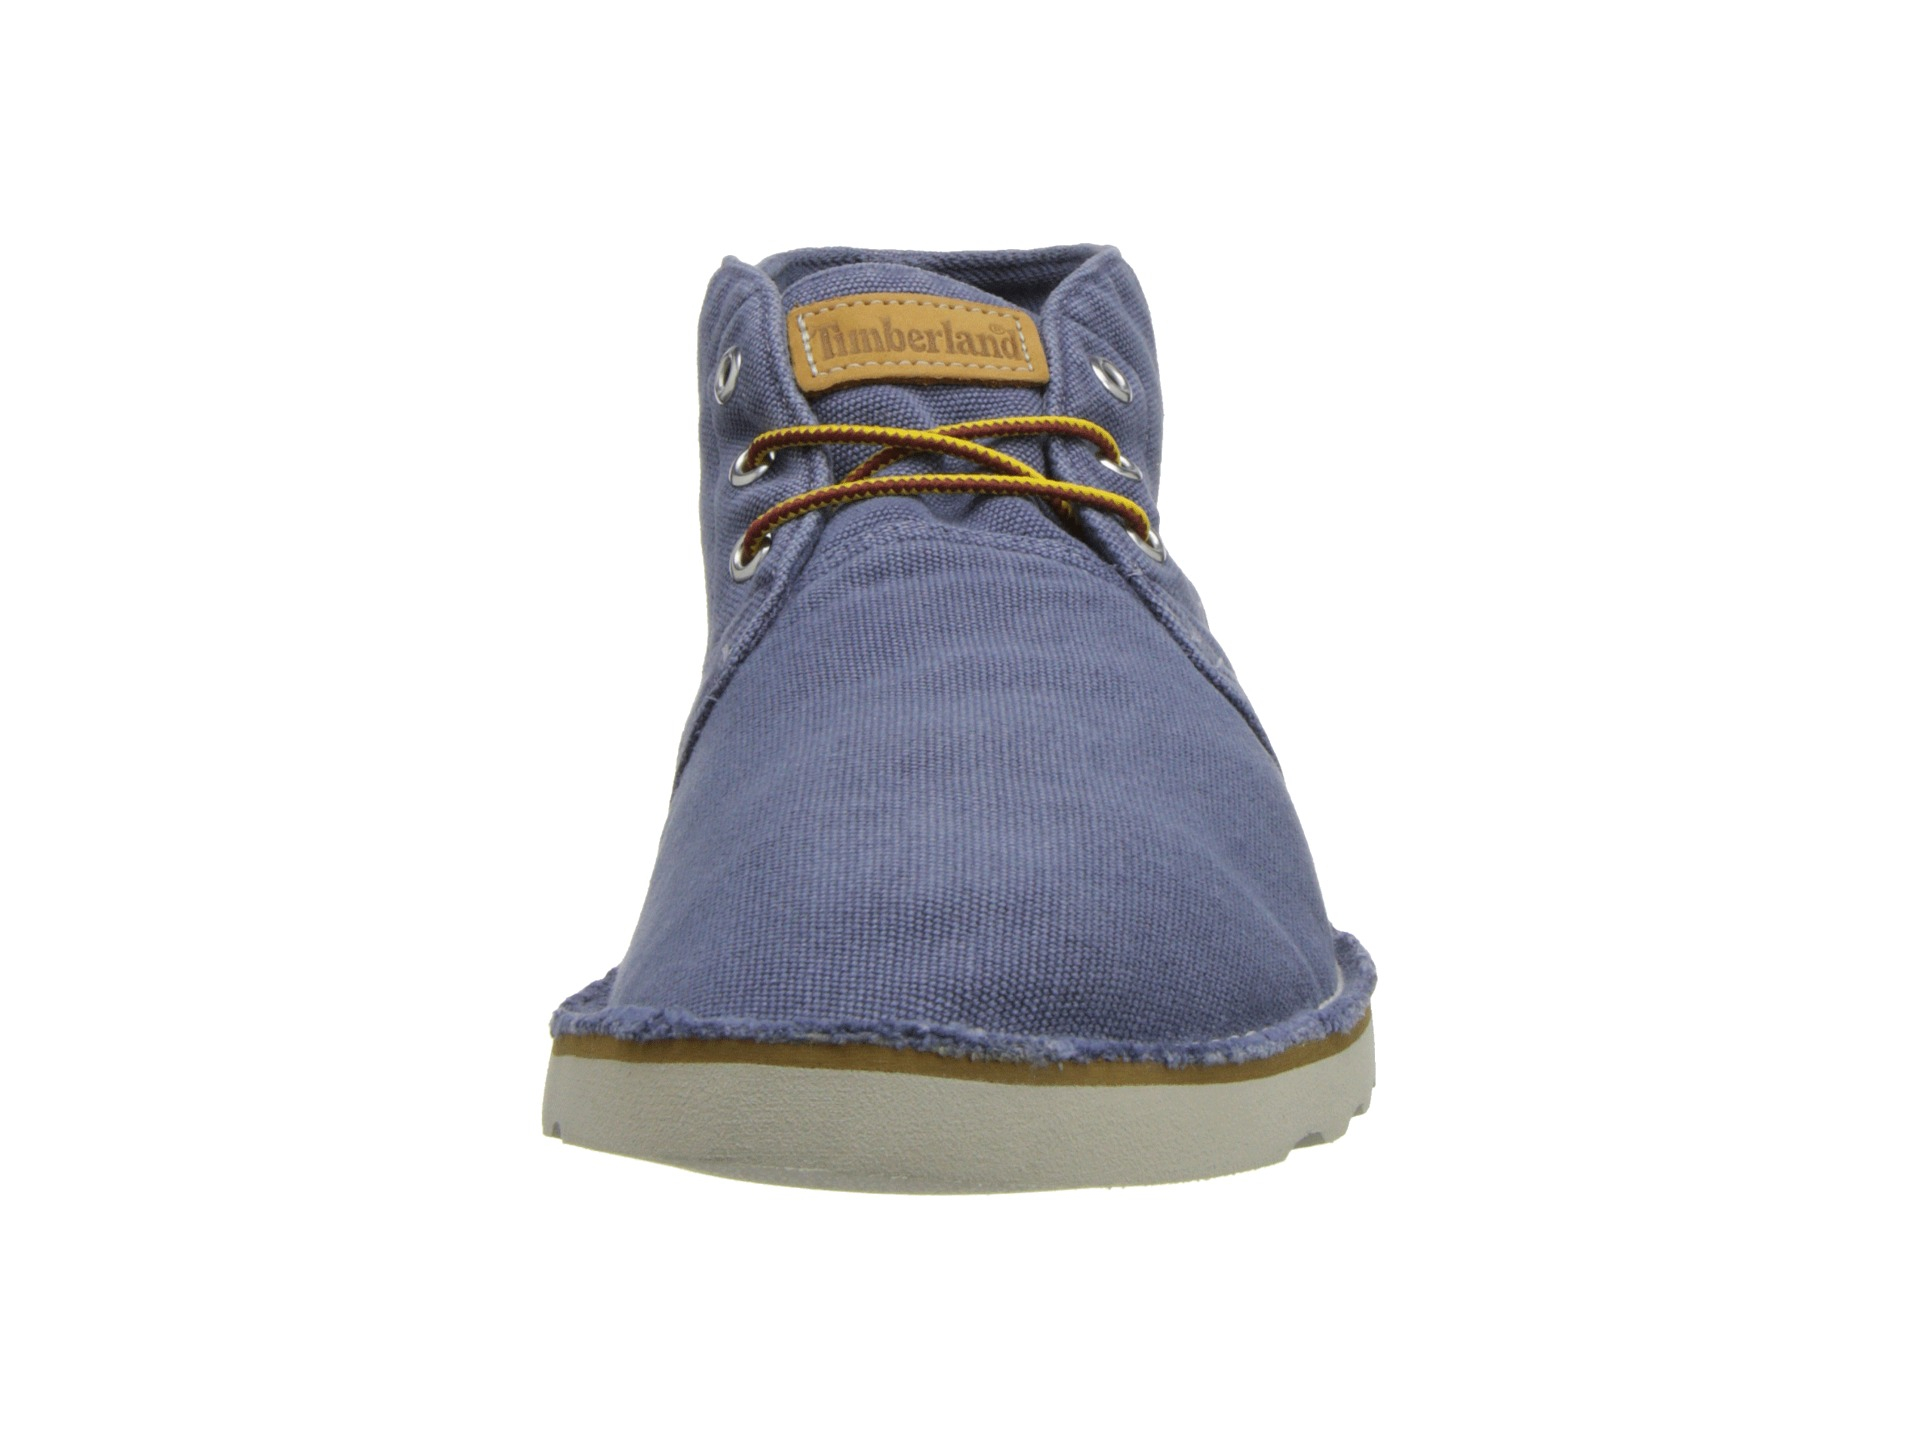 3105c4d08591 Lyst - Timberland Earthkeepers® Handcrafted Wedge Plain Toe Chukka ...